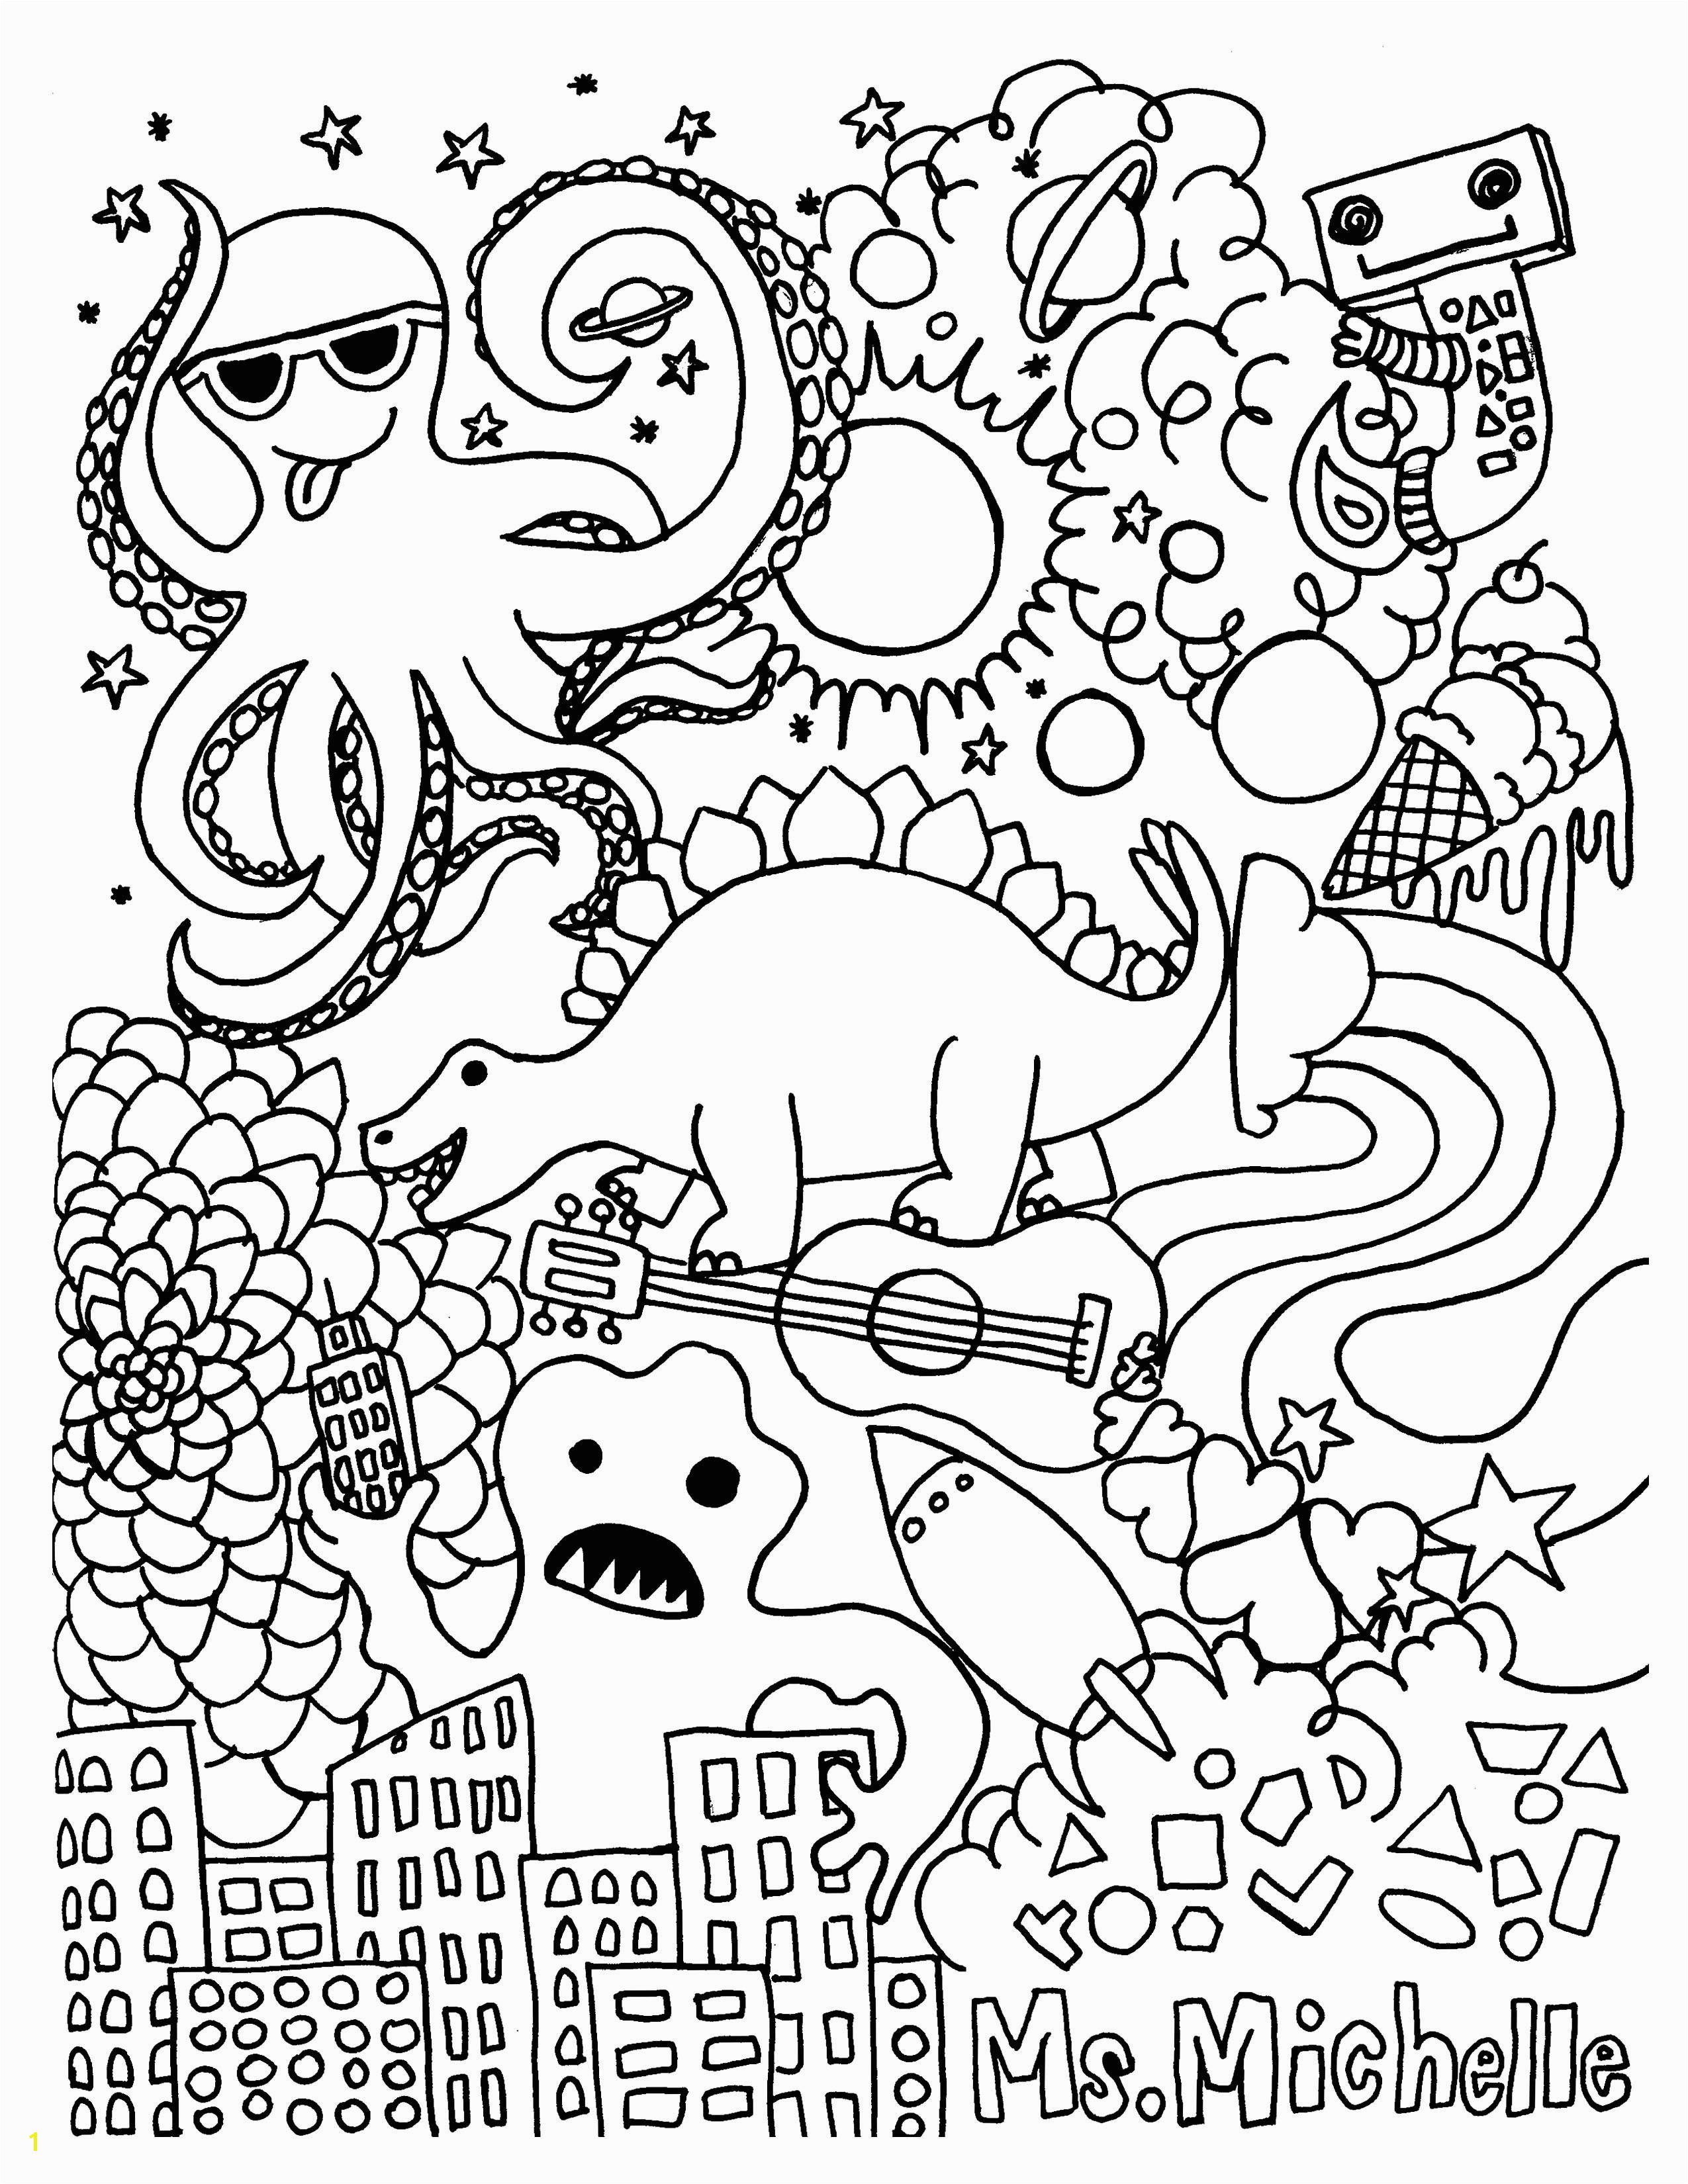 Morkie Coloring Pages Awesome Coloring Pages for Kids Printable Inspirational Coloring